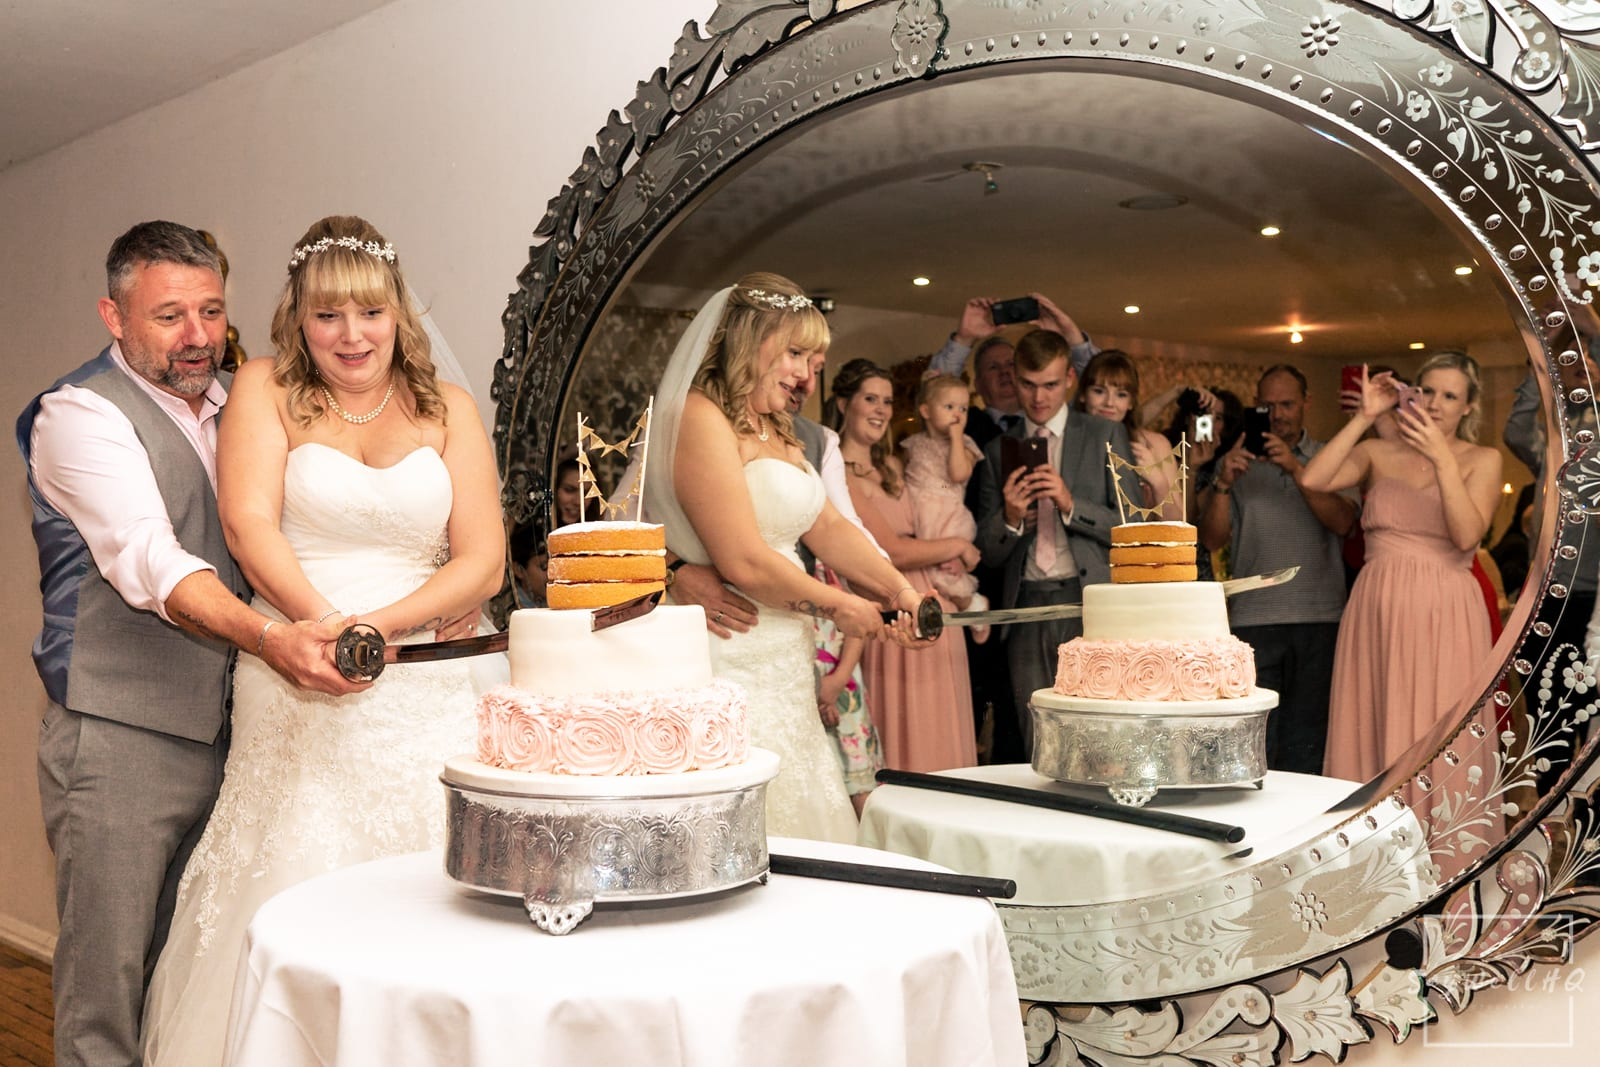 Woodborough Hall Wedding Photography + bride and groom cutting the wedding cake whilst the wedding guests look on